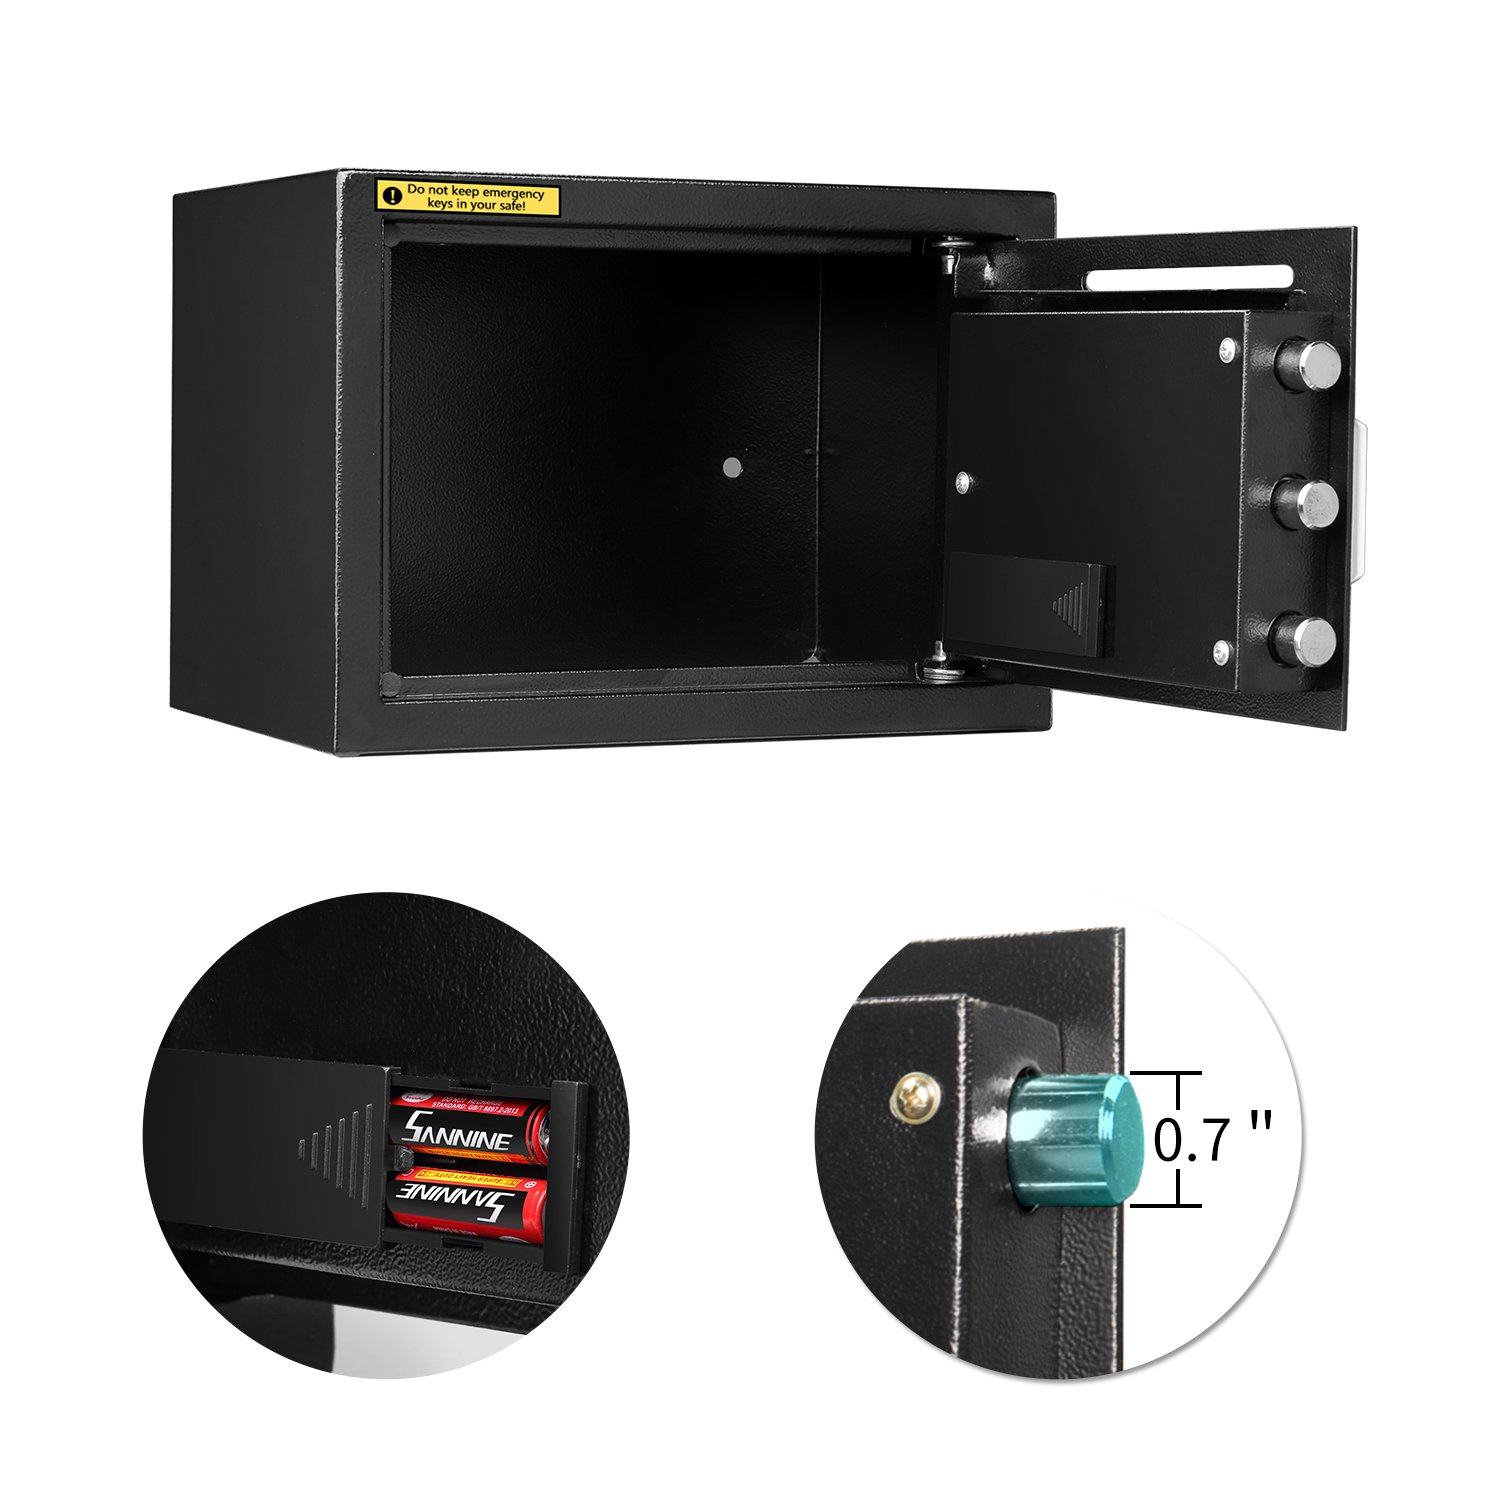 HYD-Parts Digital Security Safety Box,Money Gunsafe Cabinet Box for Home Office Hotel (25) by HYD-Parts (Image #2)